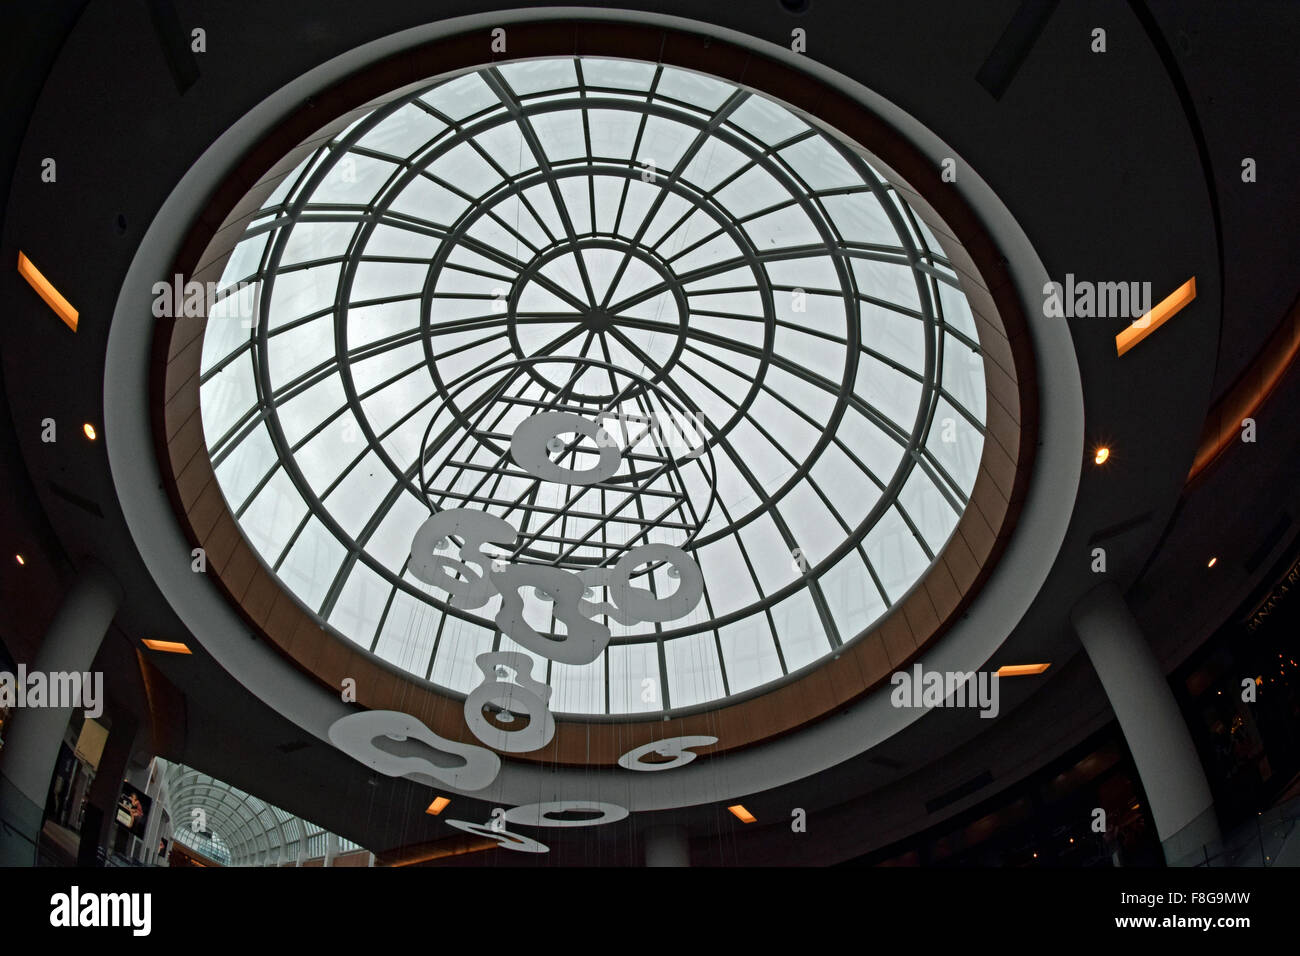 A mobile hanging at the Roosevelt Field indoor mall in Garden City, Long Island, New York - Stock Image